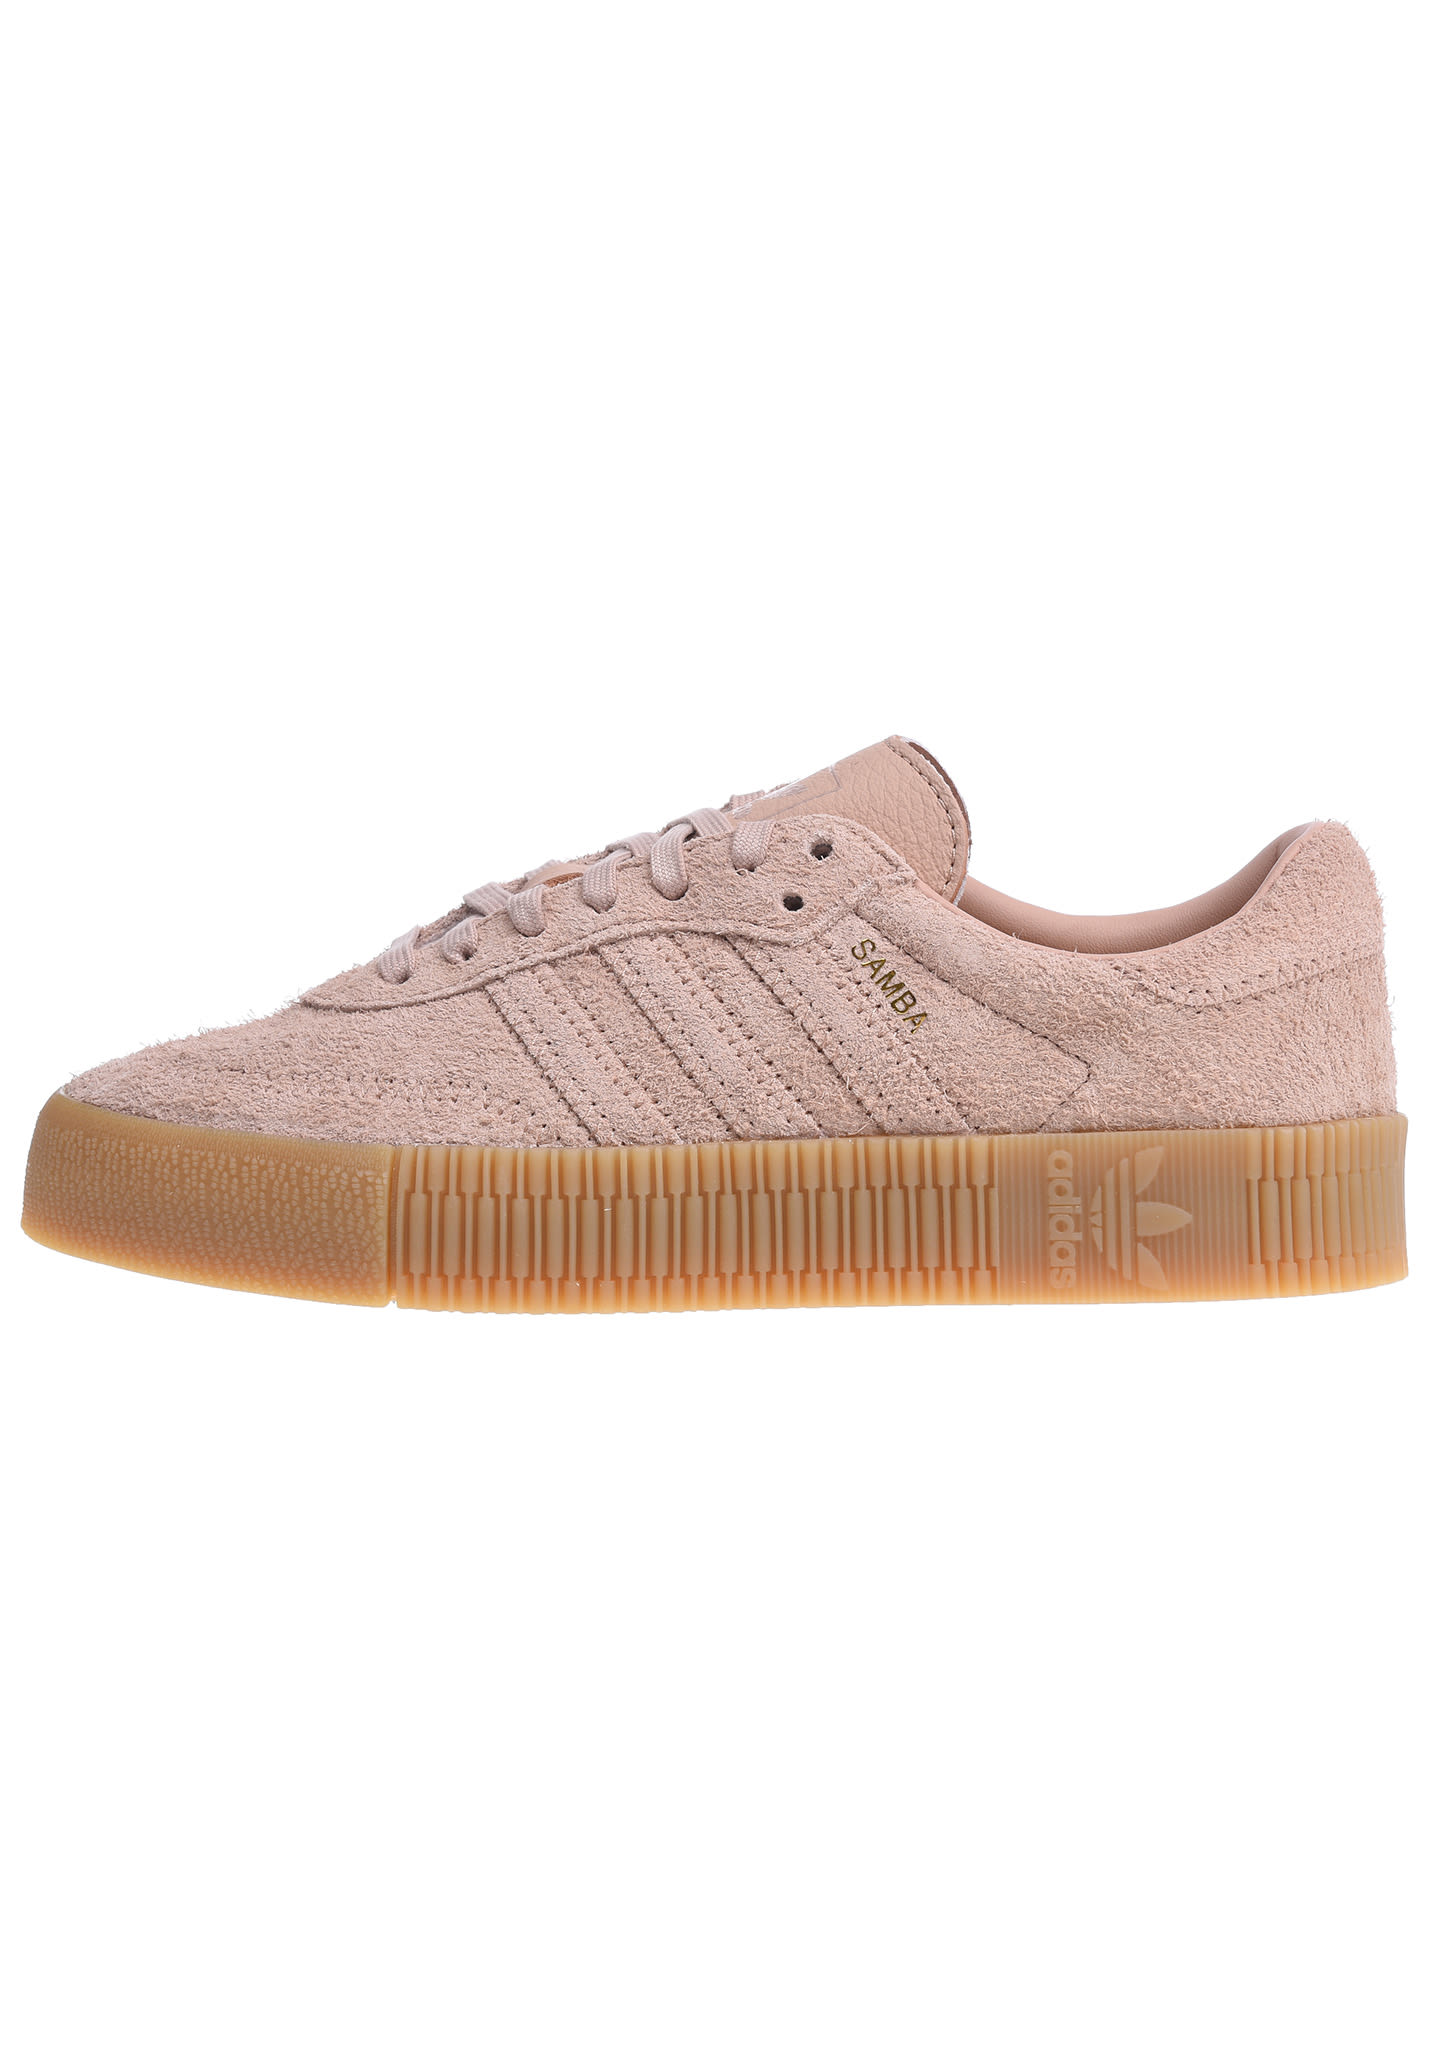 super popular 54f7f dcea3 ADIDAS ORIGINALS Samba Rose - Sneakers for Women - Pink